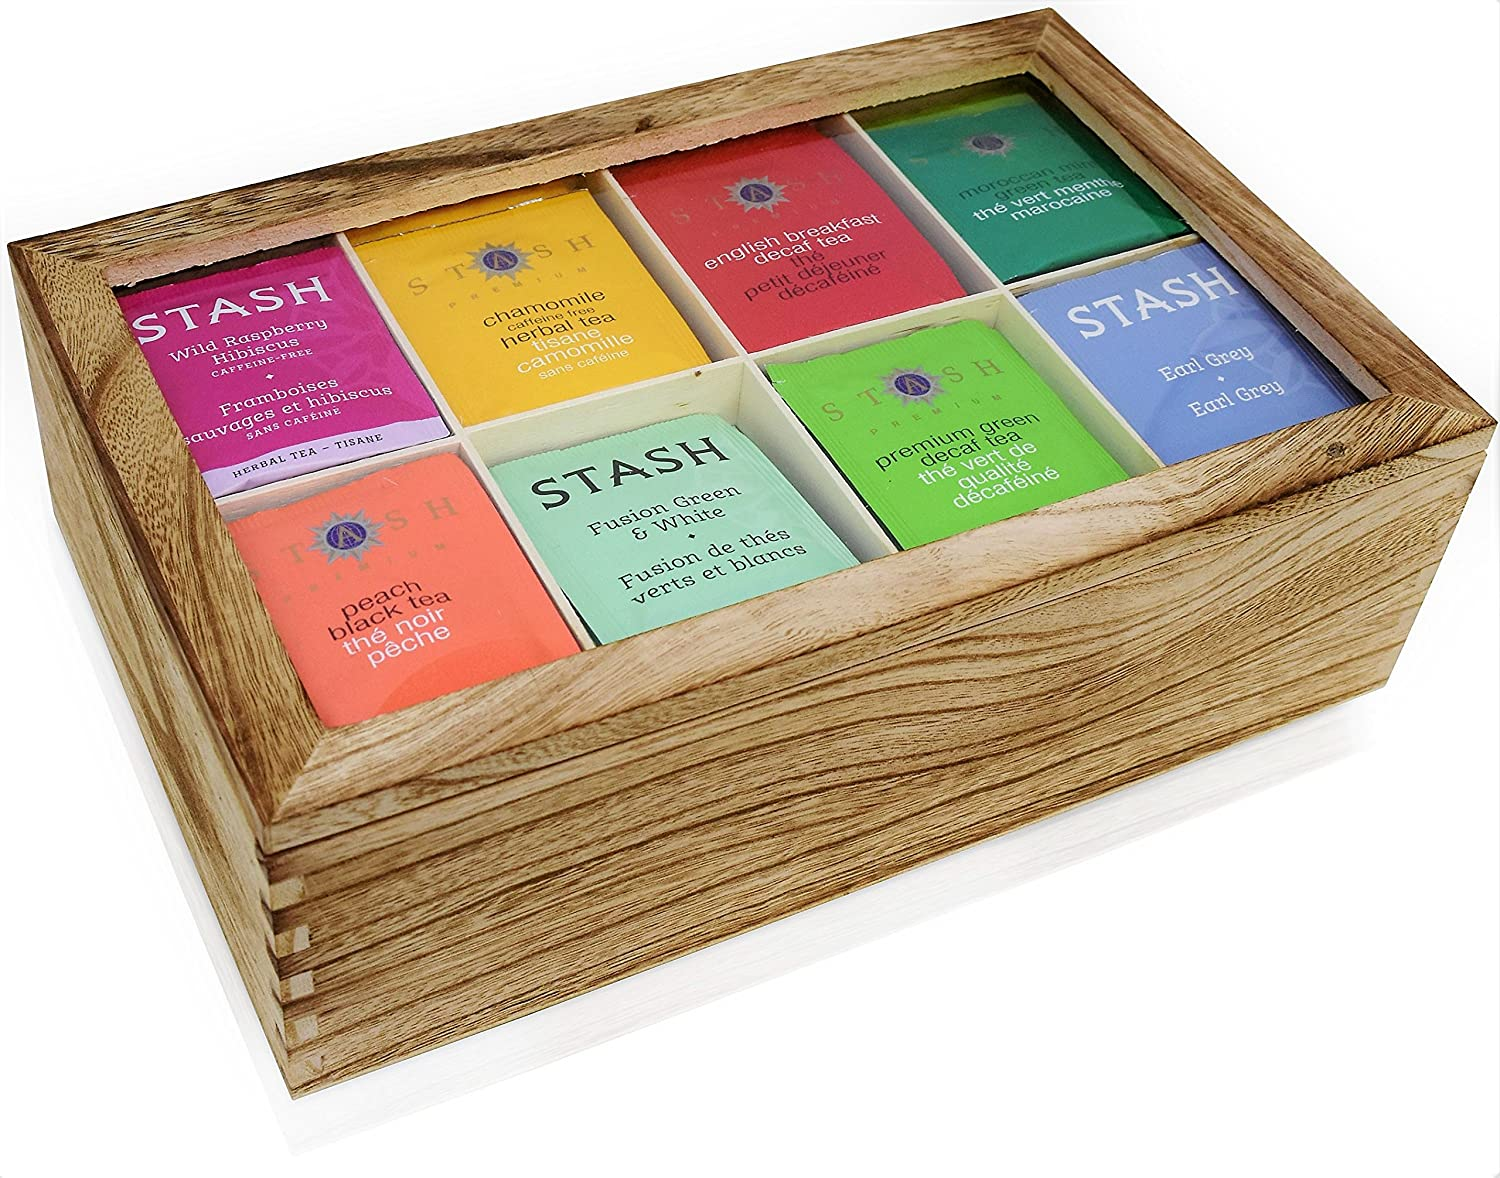 Stash Tea Bags Sampler Assortment Box 120 Count Perfect Variety Pack In Wooden Gift Box